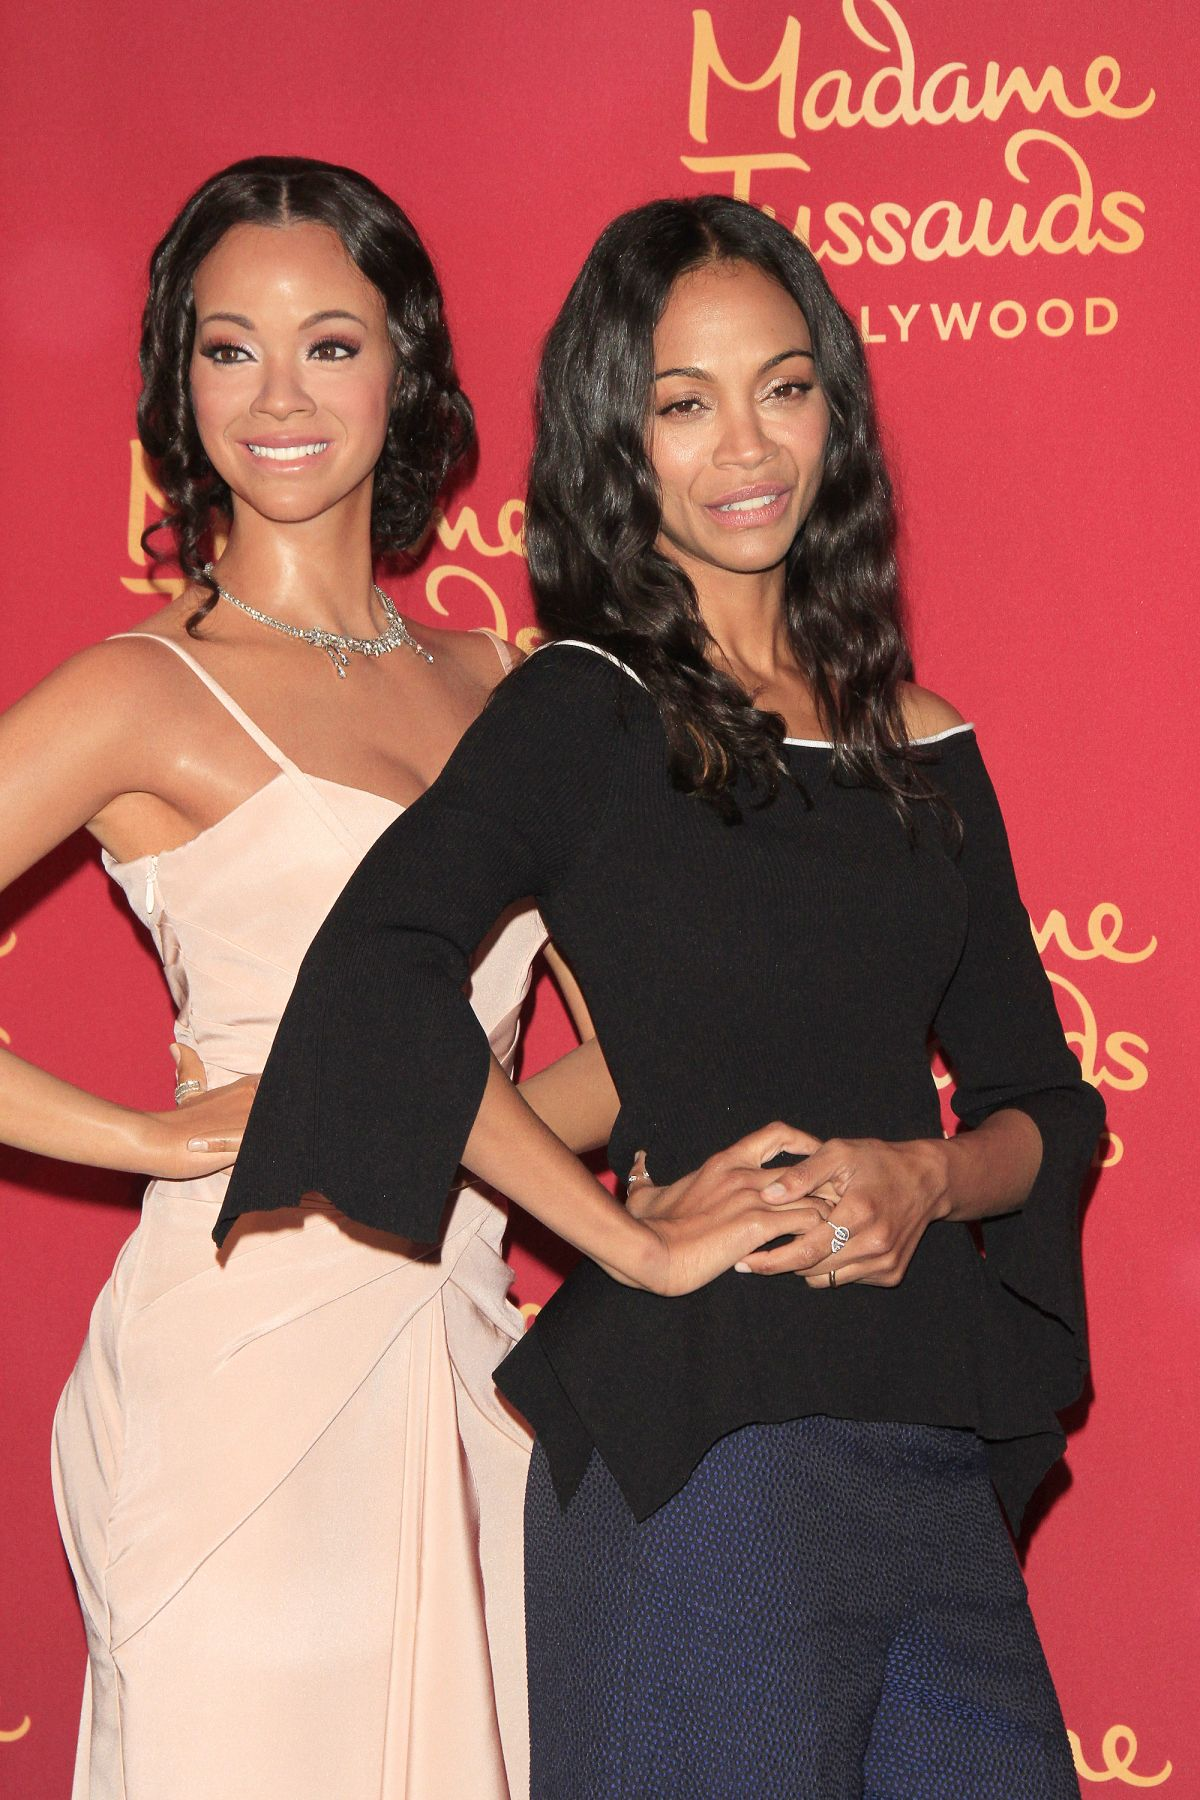 ZOE SALDANA at Madame Tussaud